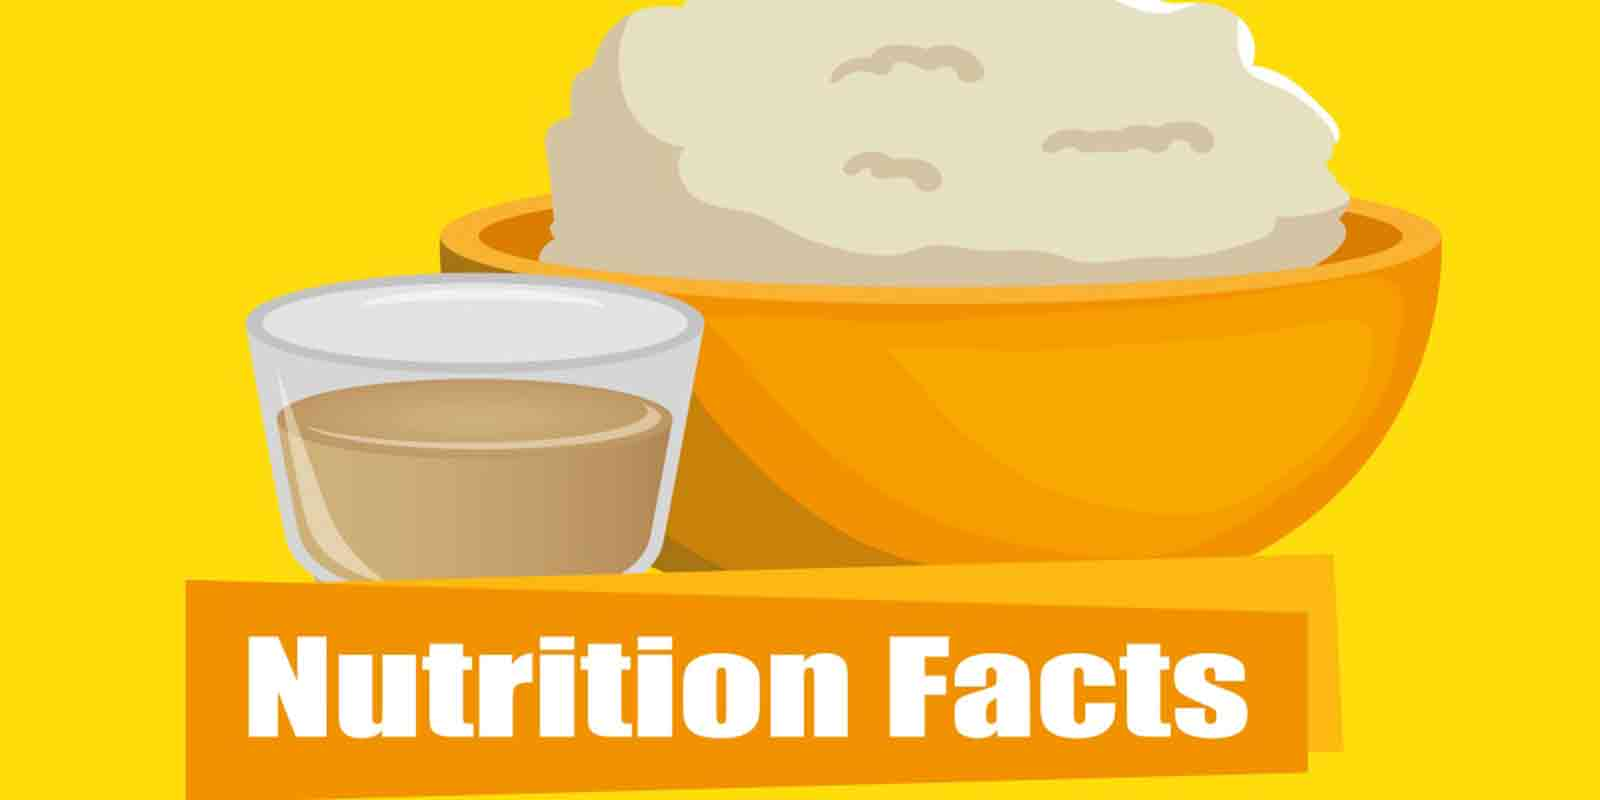 This feature image is a charicature of dairy products with a focus on nutrition facts.l